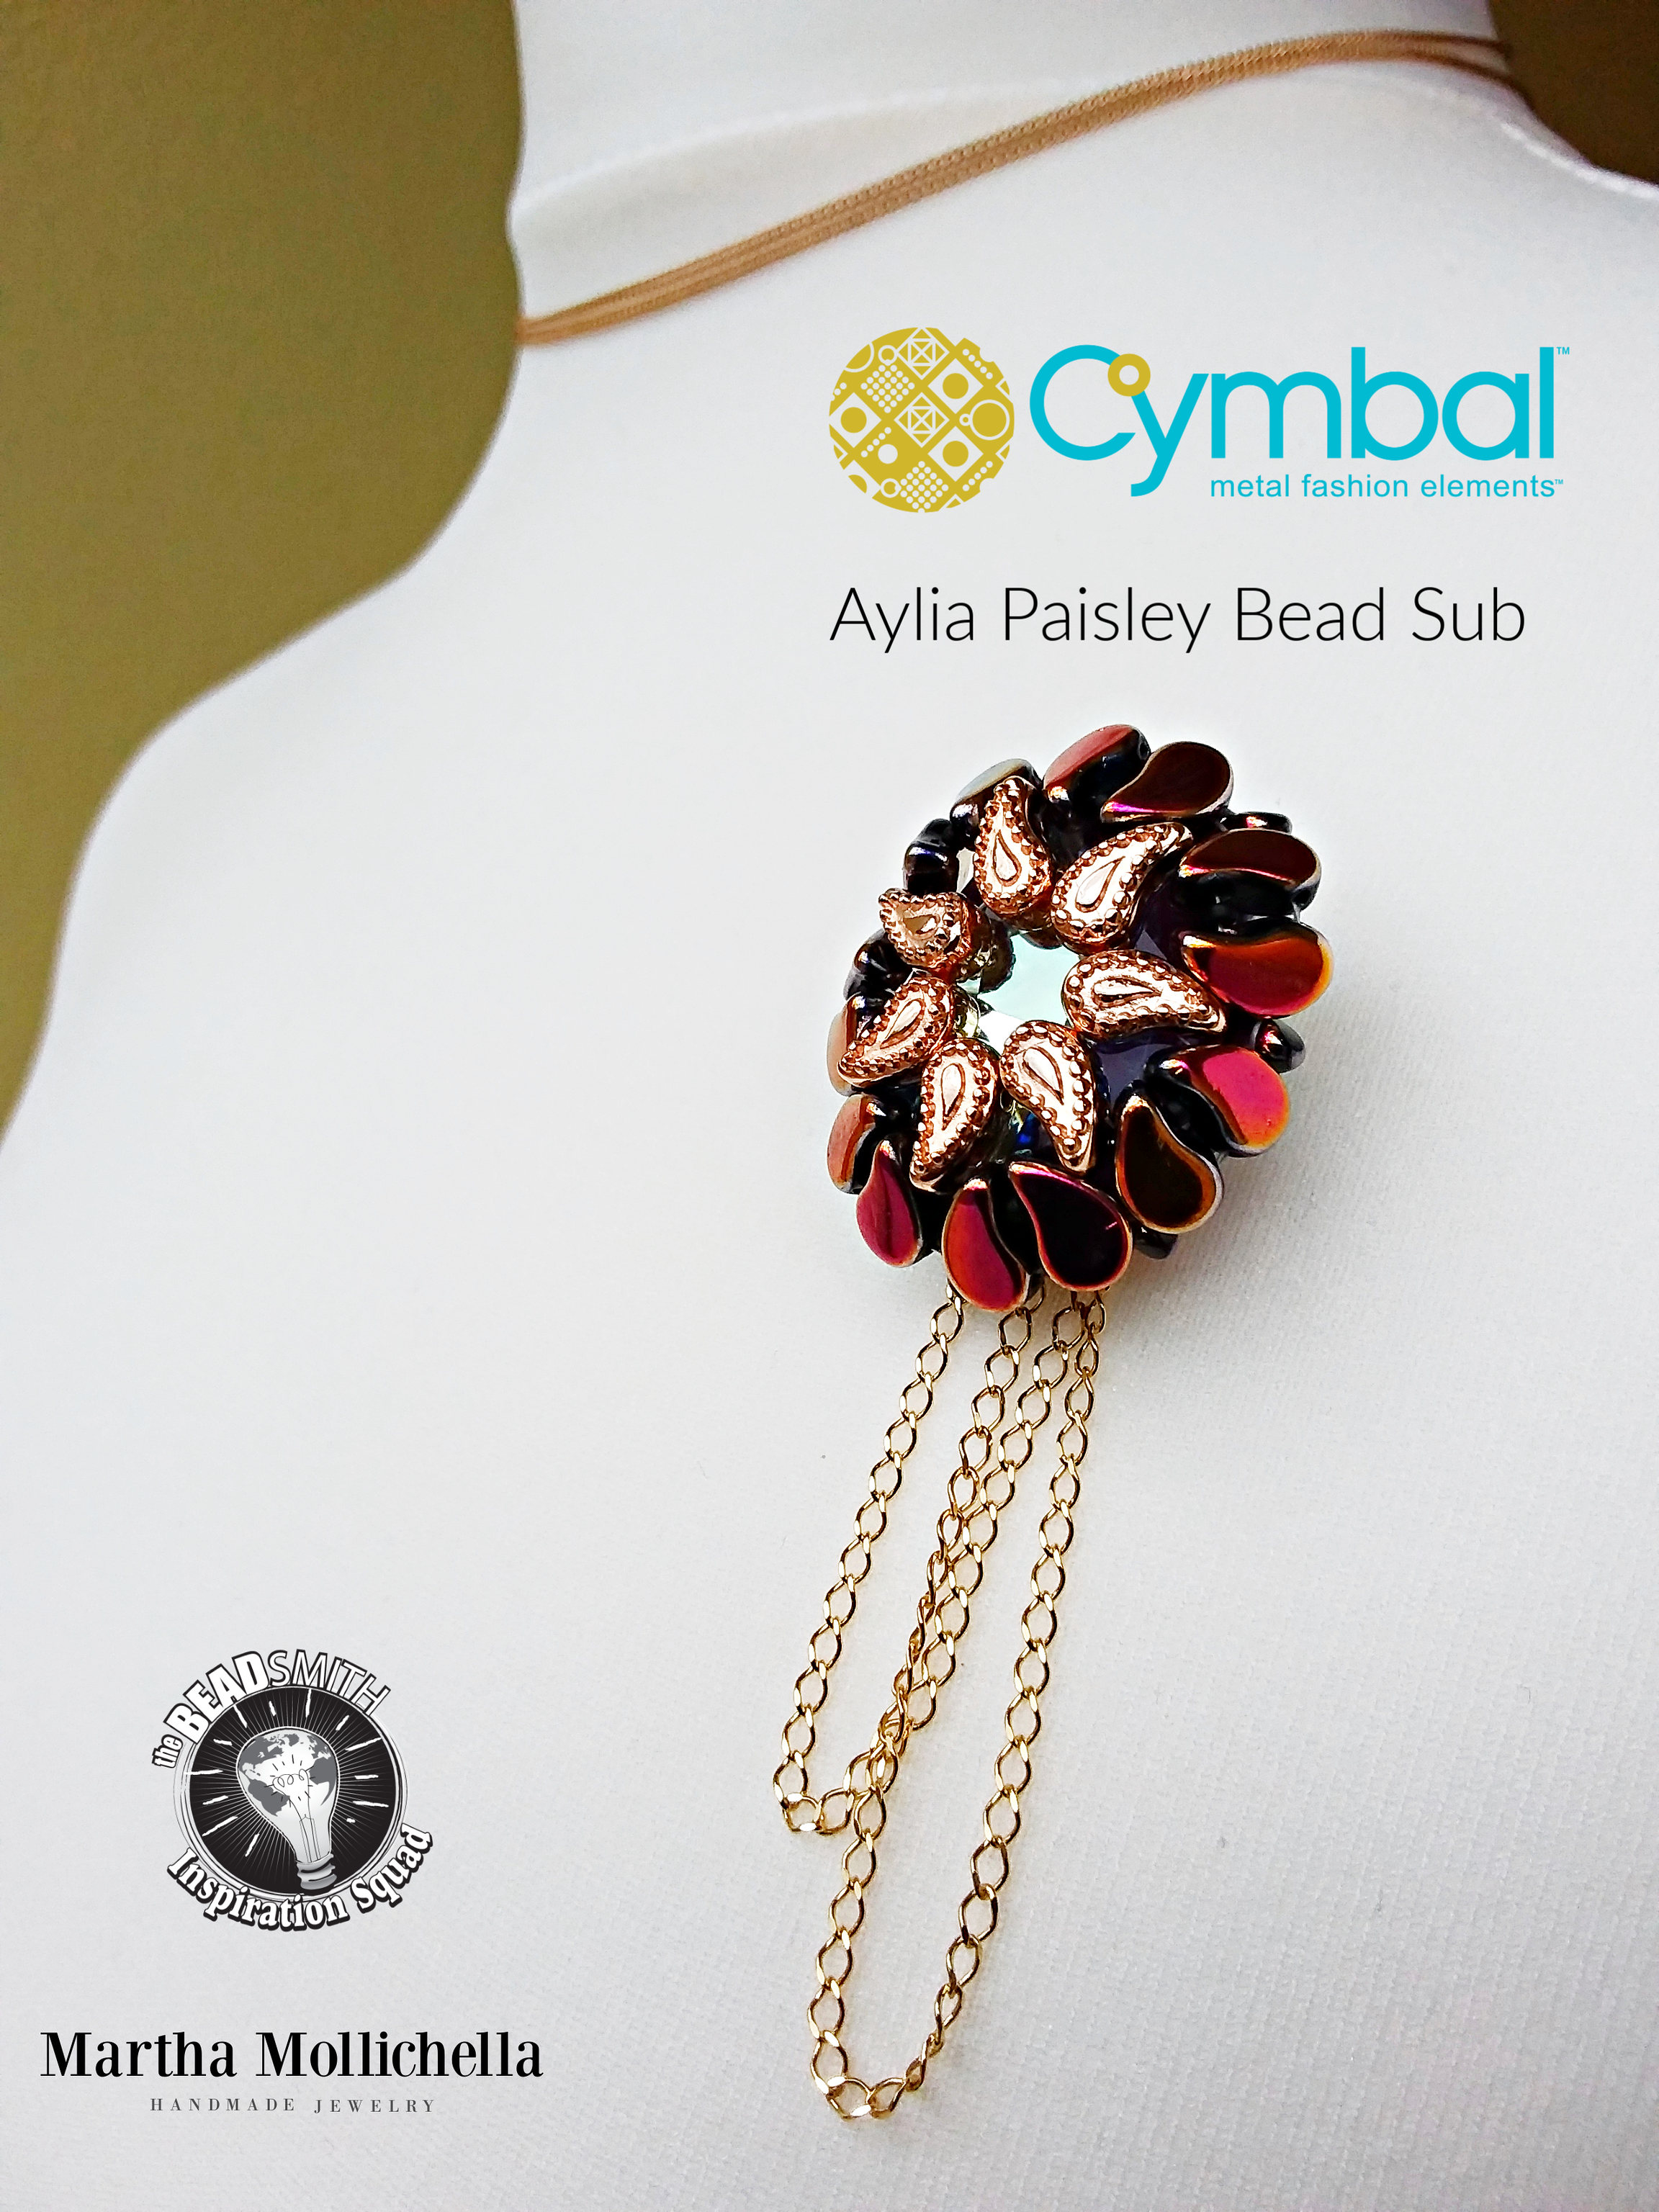 Cymbal elements Aylia The Beadsmith handmade by Martha Mollichella